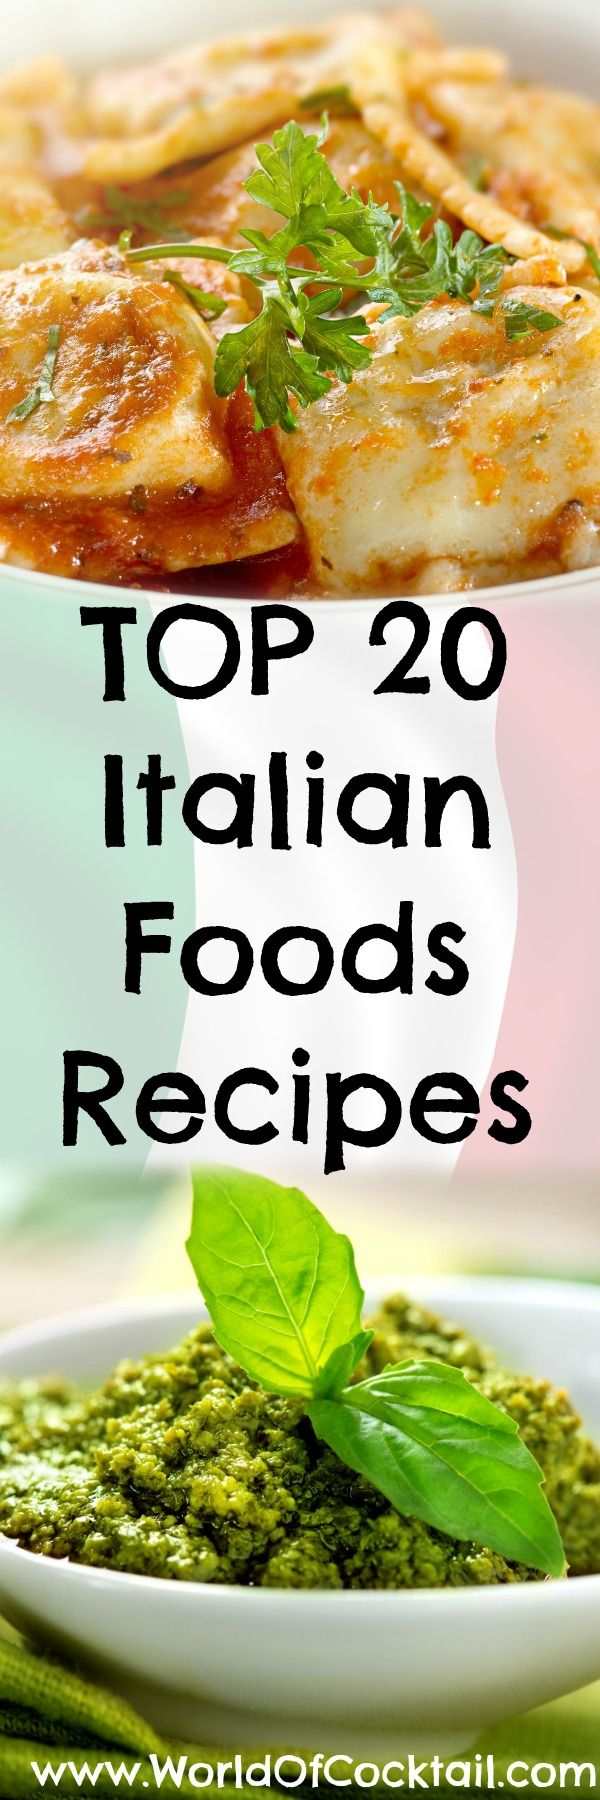 Try the 20 best recipes from all over Italy. We guarantee that you will enjoy! 1. Amatriciana Recipe: 4 slices bacon, diced 1/2 cup chopped onion 1 teaspoon minced garlic .. [Continue Reading]